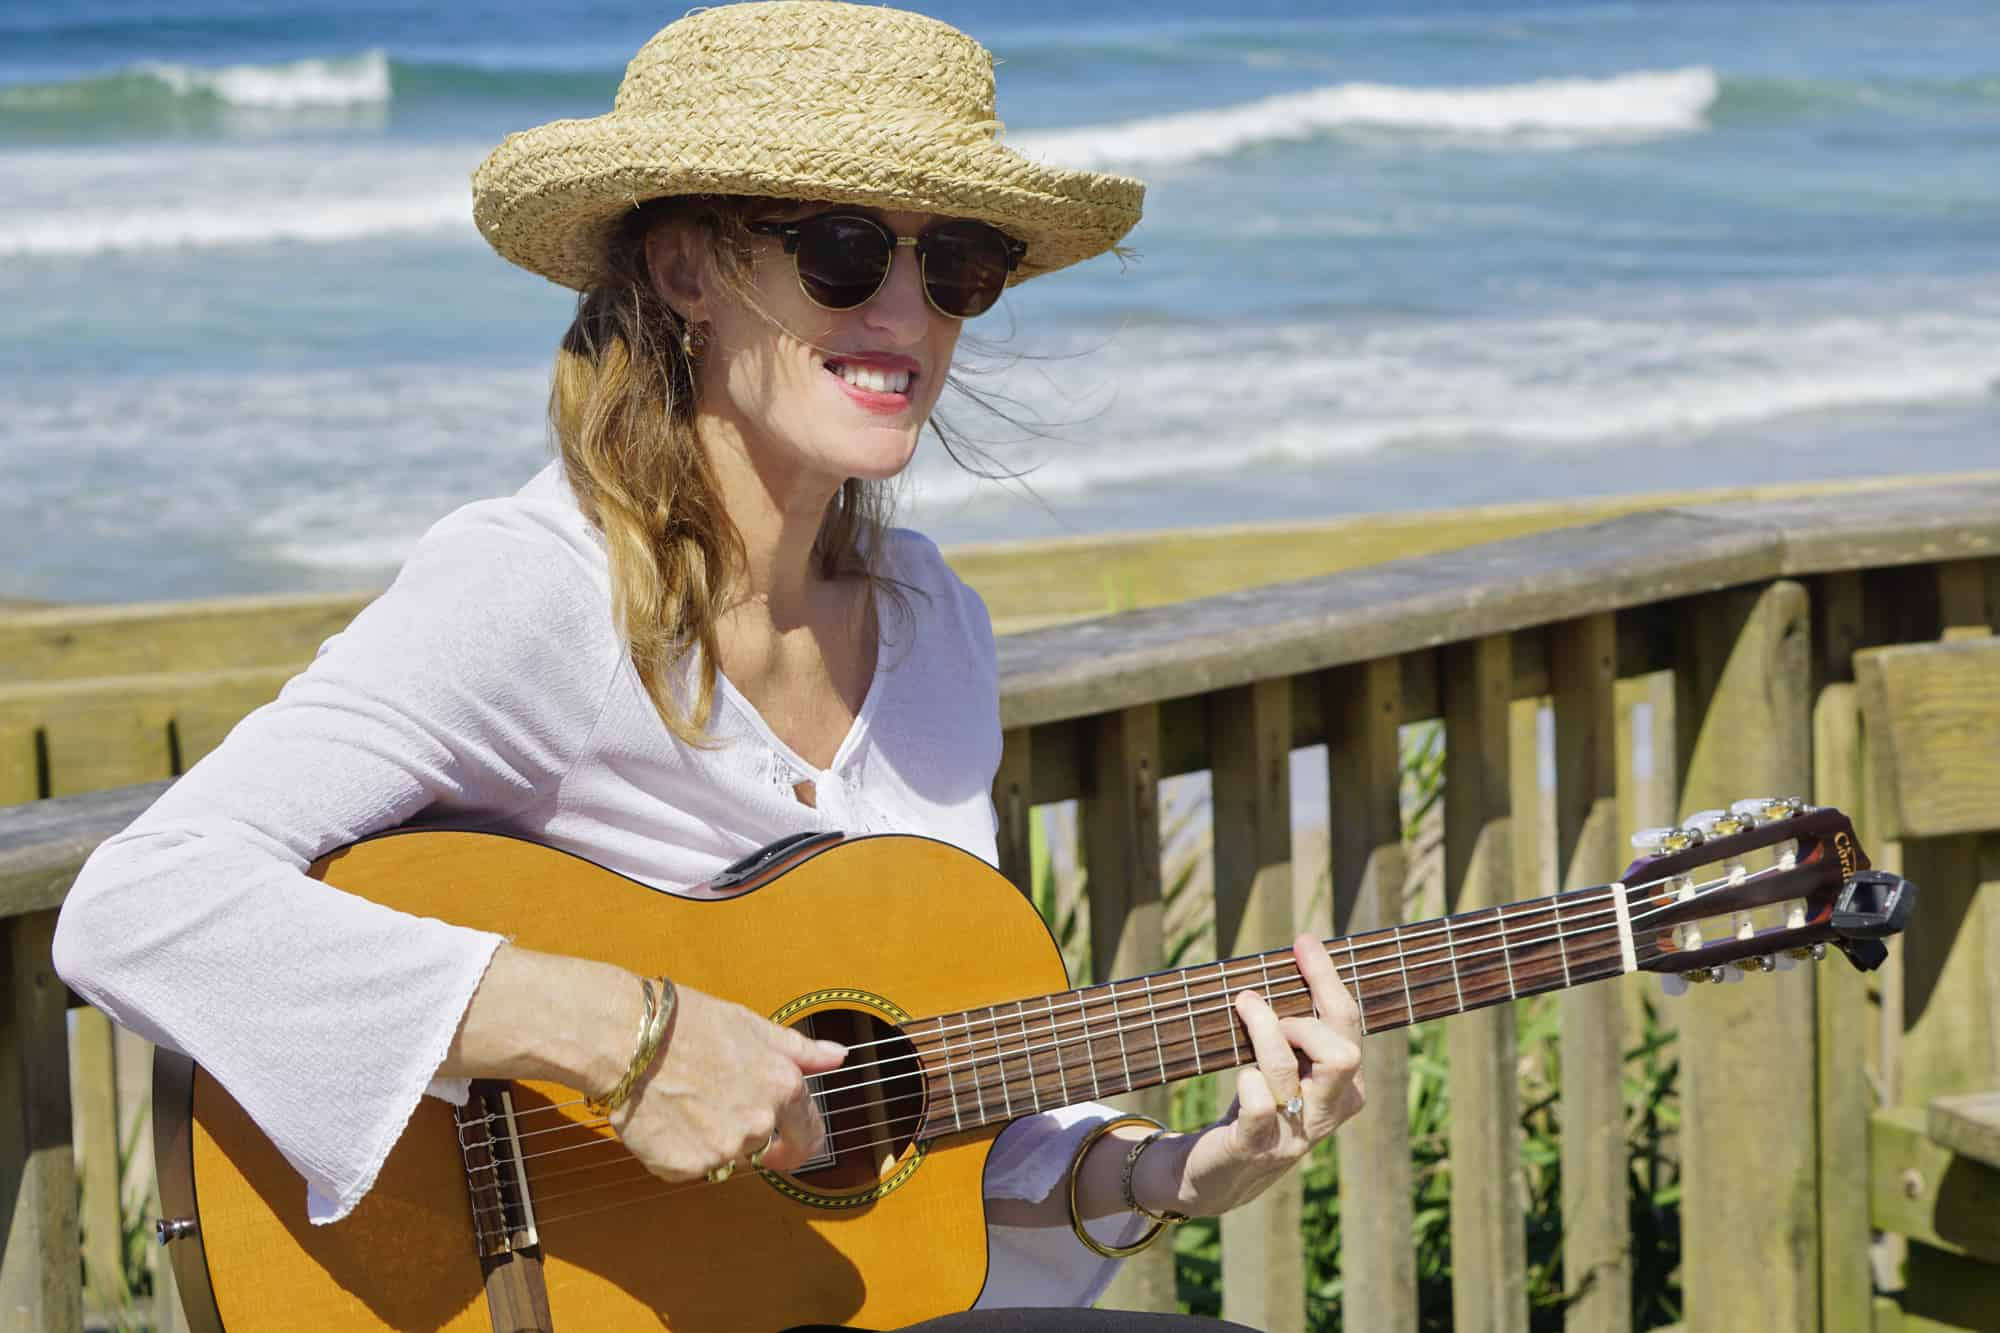 Lily playing her cordoba guitar at the beach